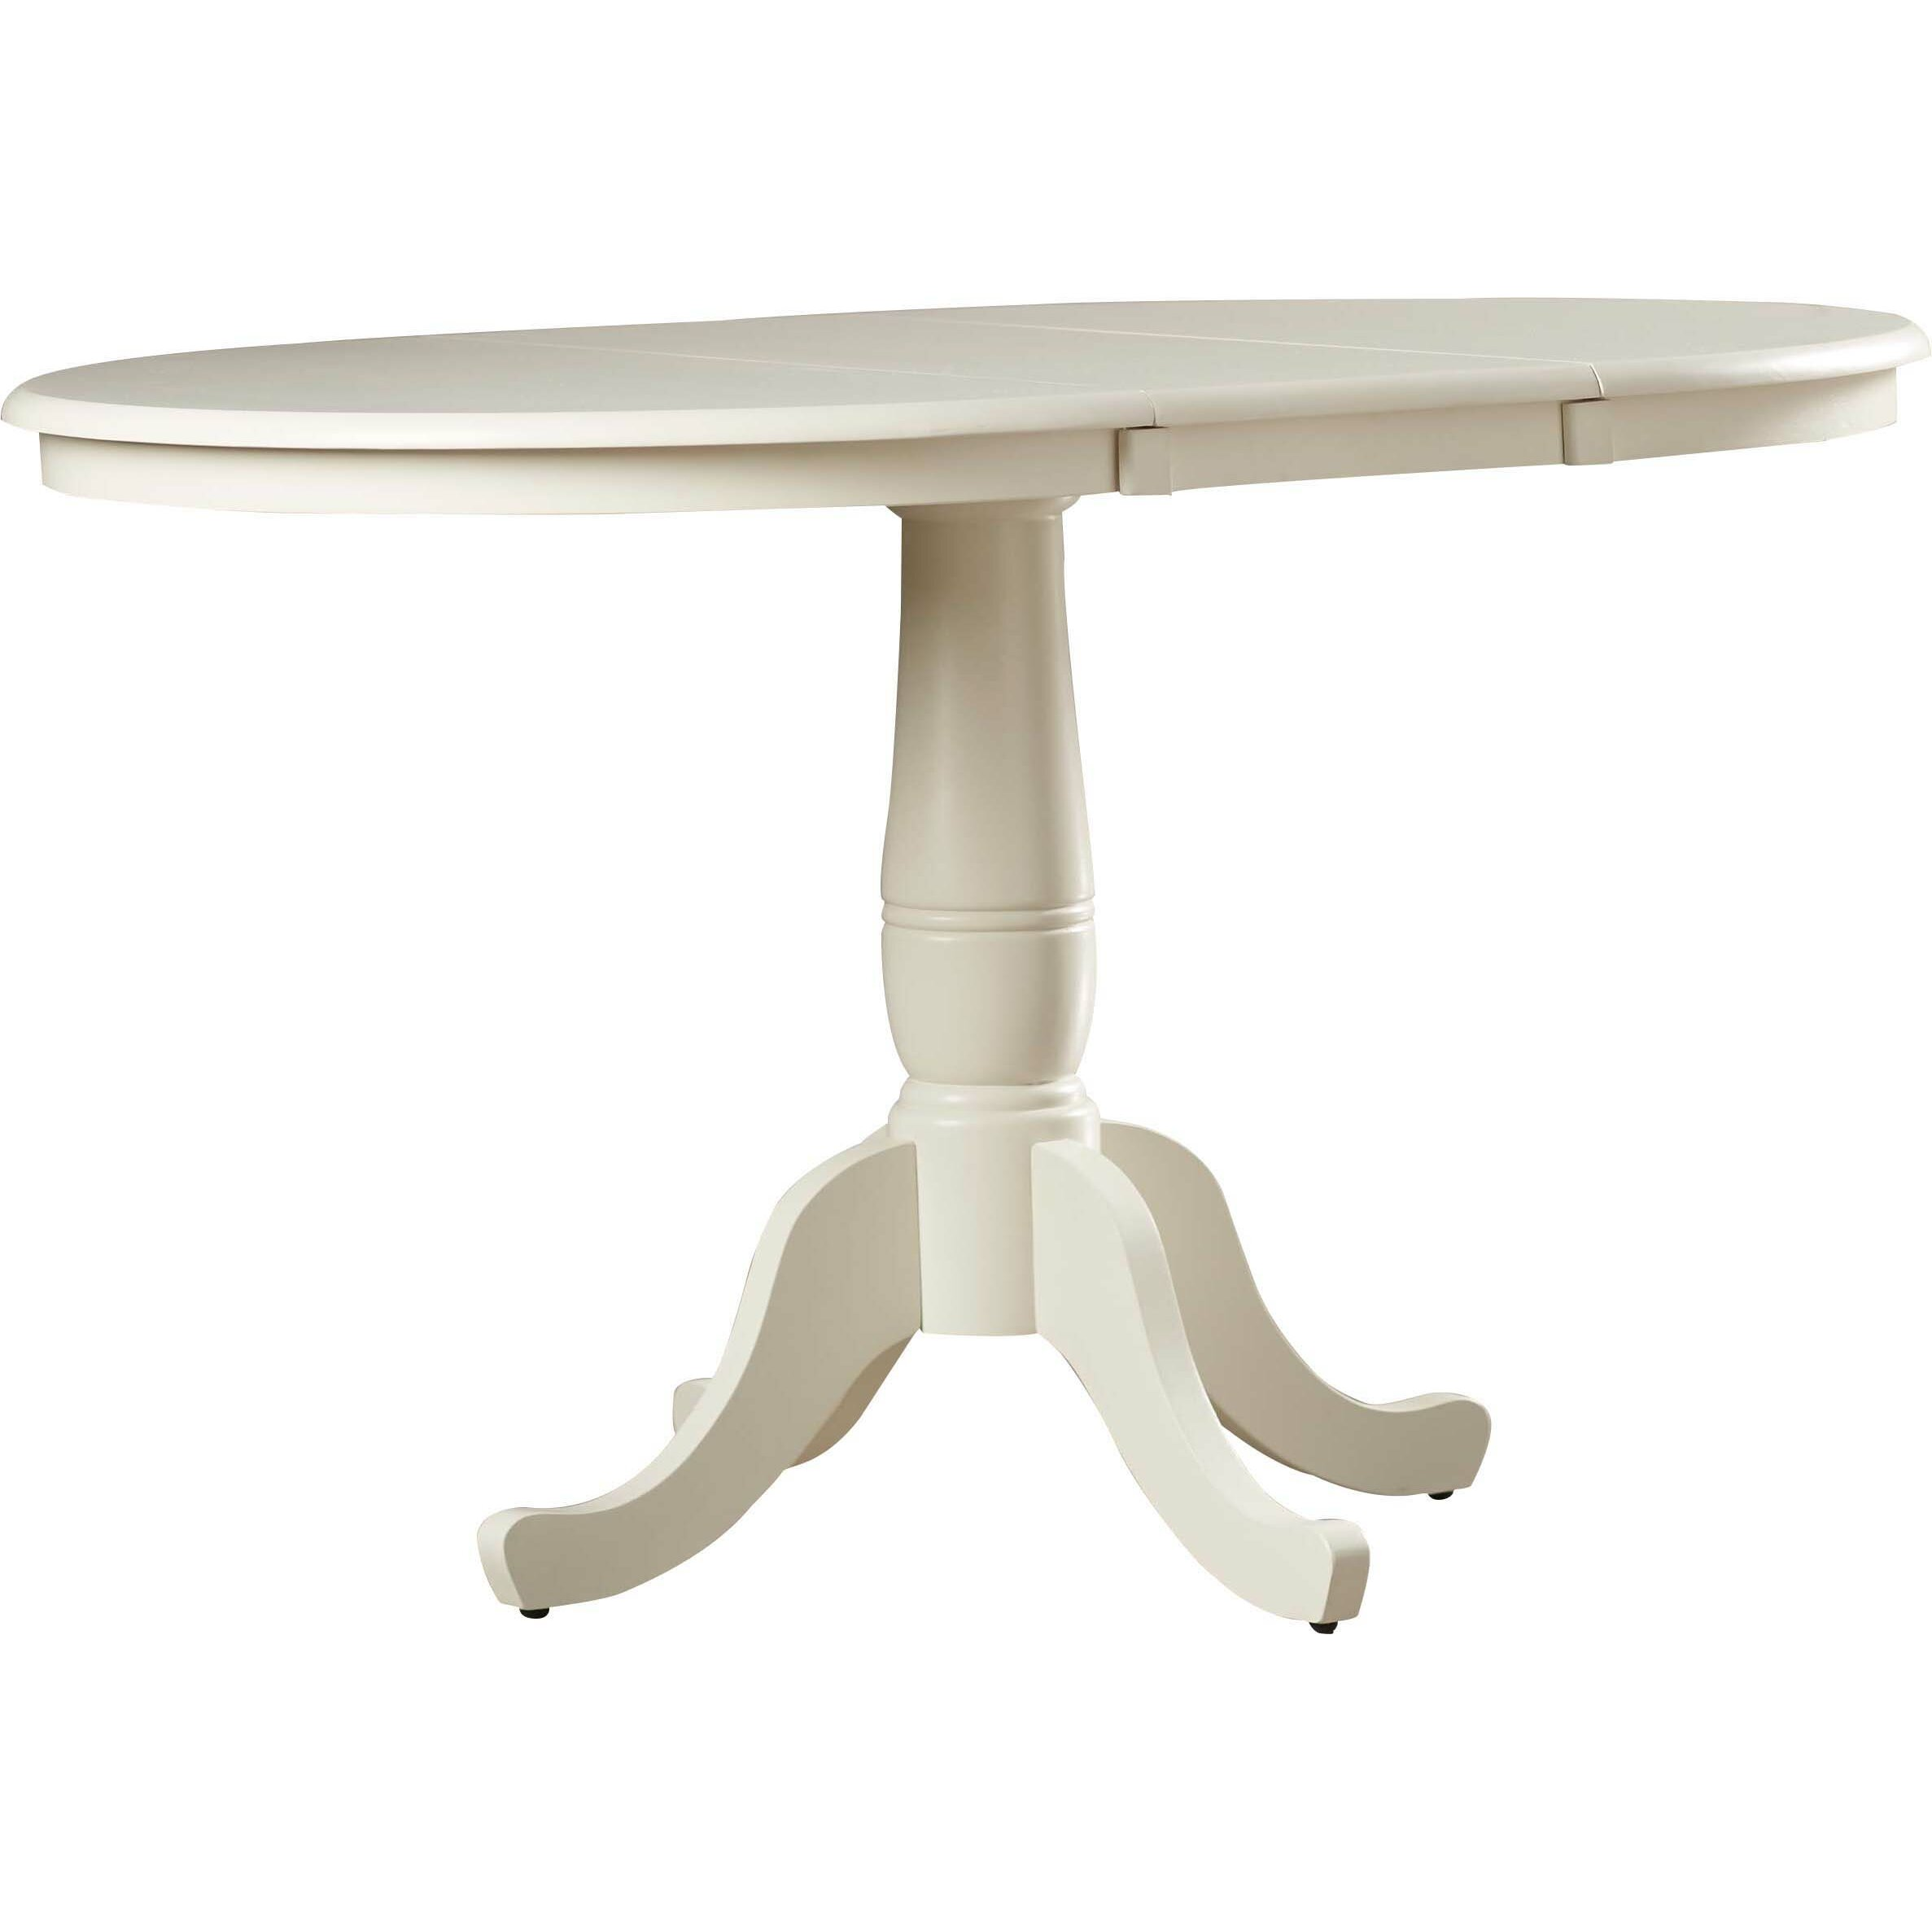 August grove 36 extendable round pedestal dining table for Pedestal dining table